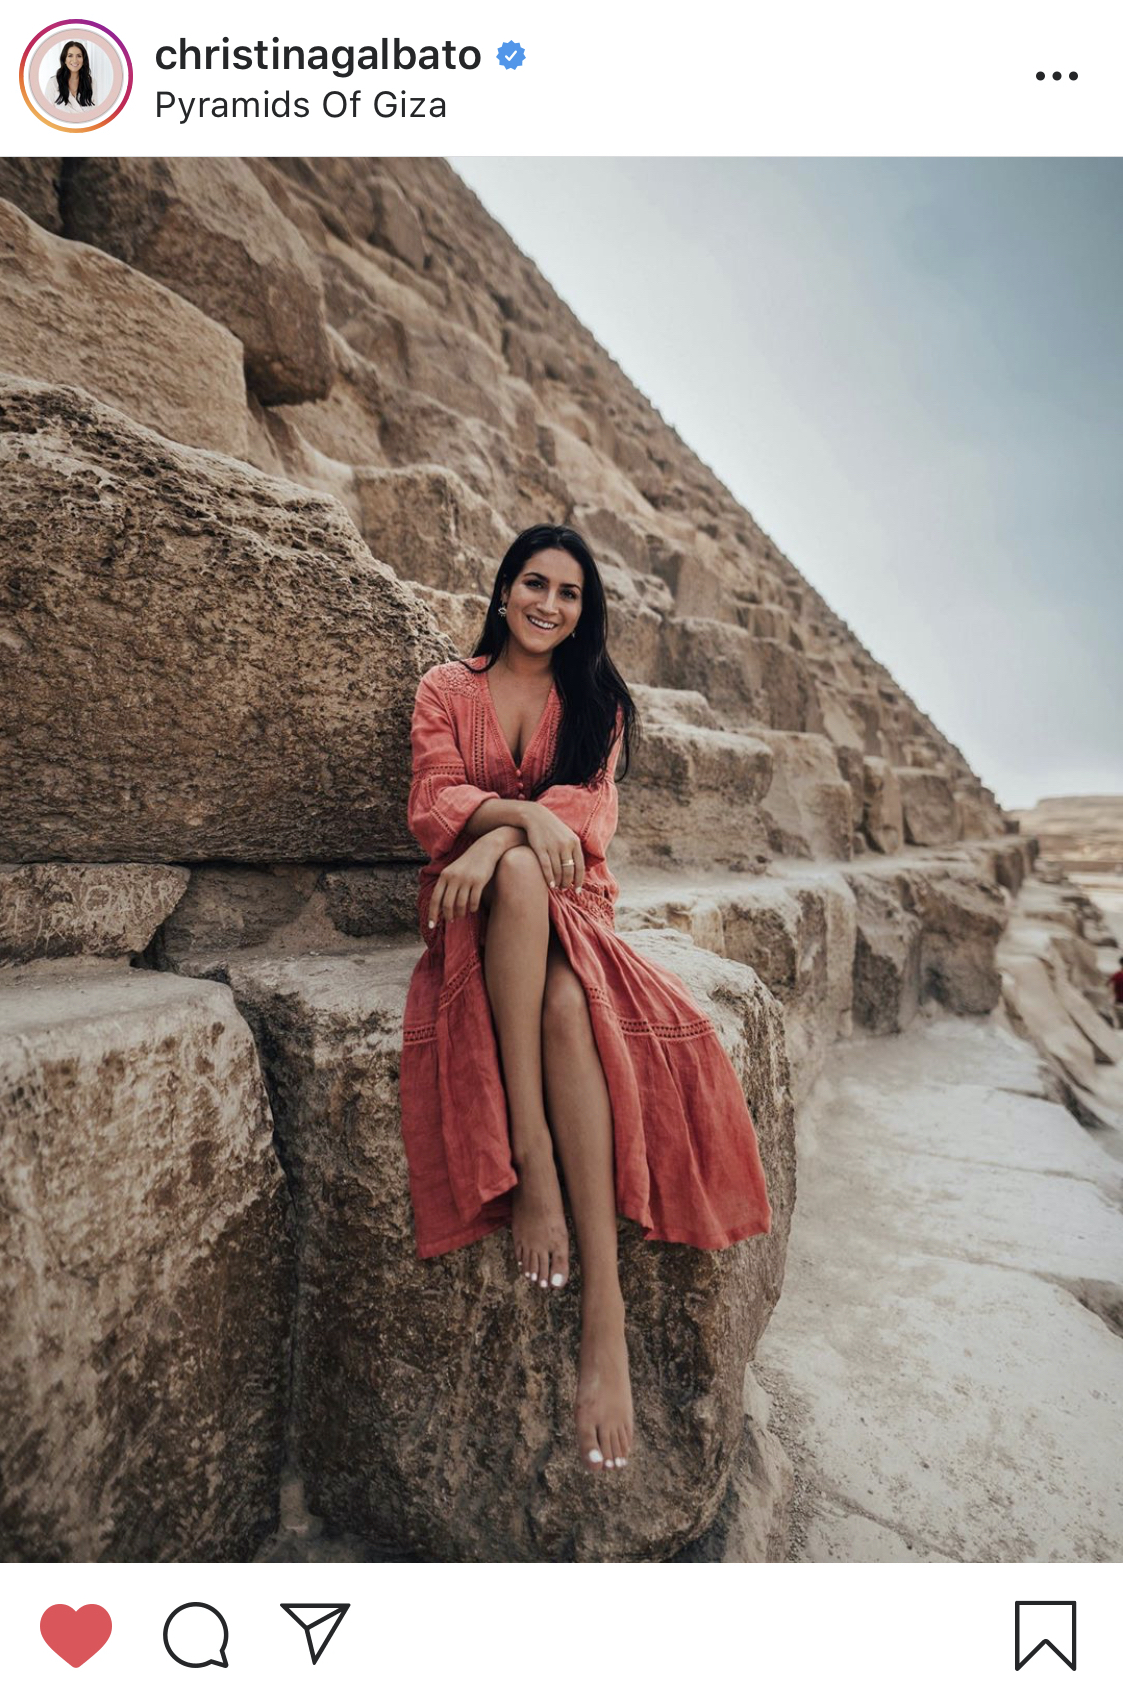 A woman sitting on the Great Pyramid of Giza